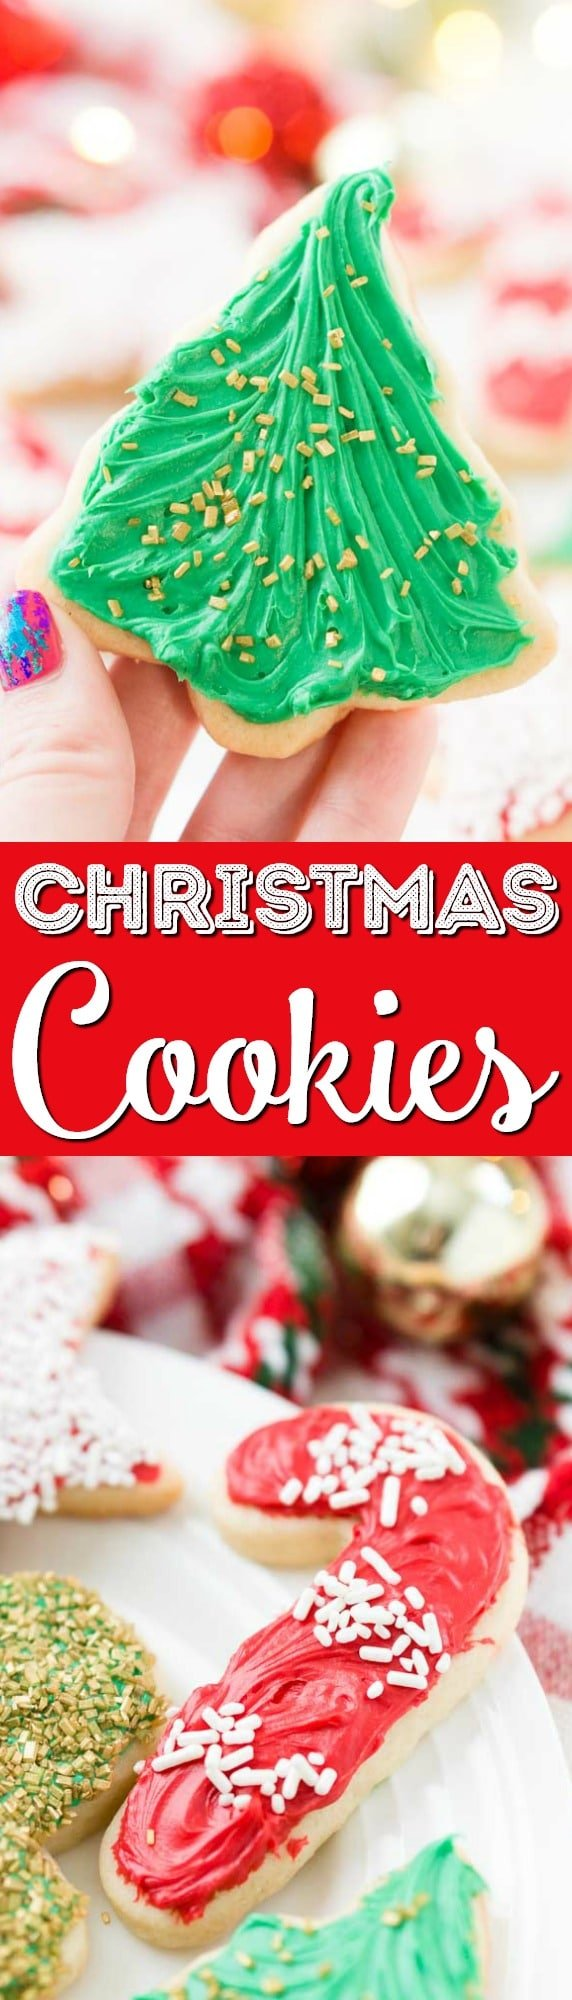 There's just something about those classic Christmas Sugar Cookie Recipe from scratch just like grandma used to make. This simple recipe made with butter, sugar, flour, and vanilla is perfect for decorating for the holidays! via @sugarandsoulco